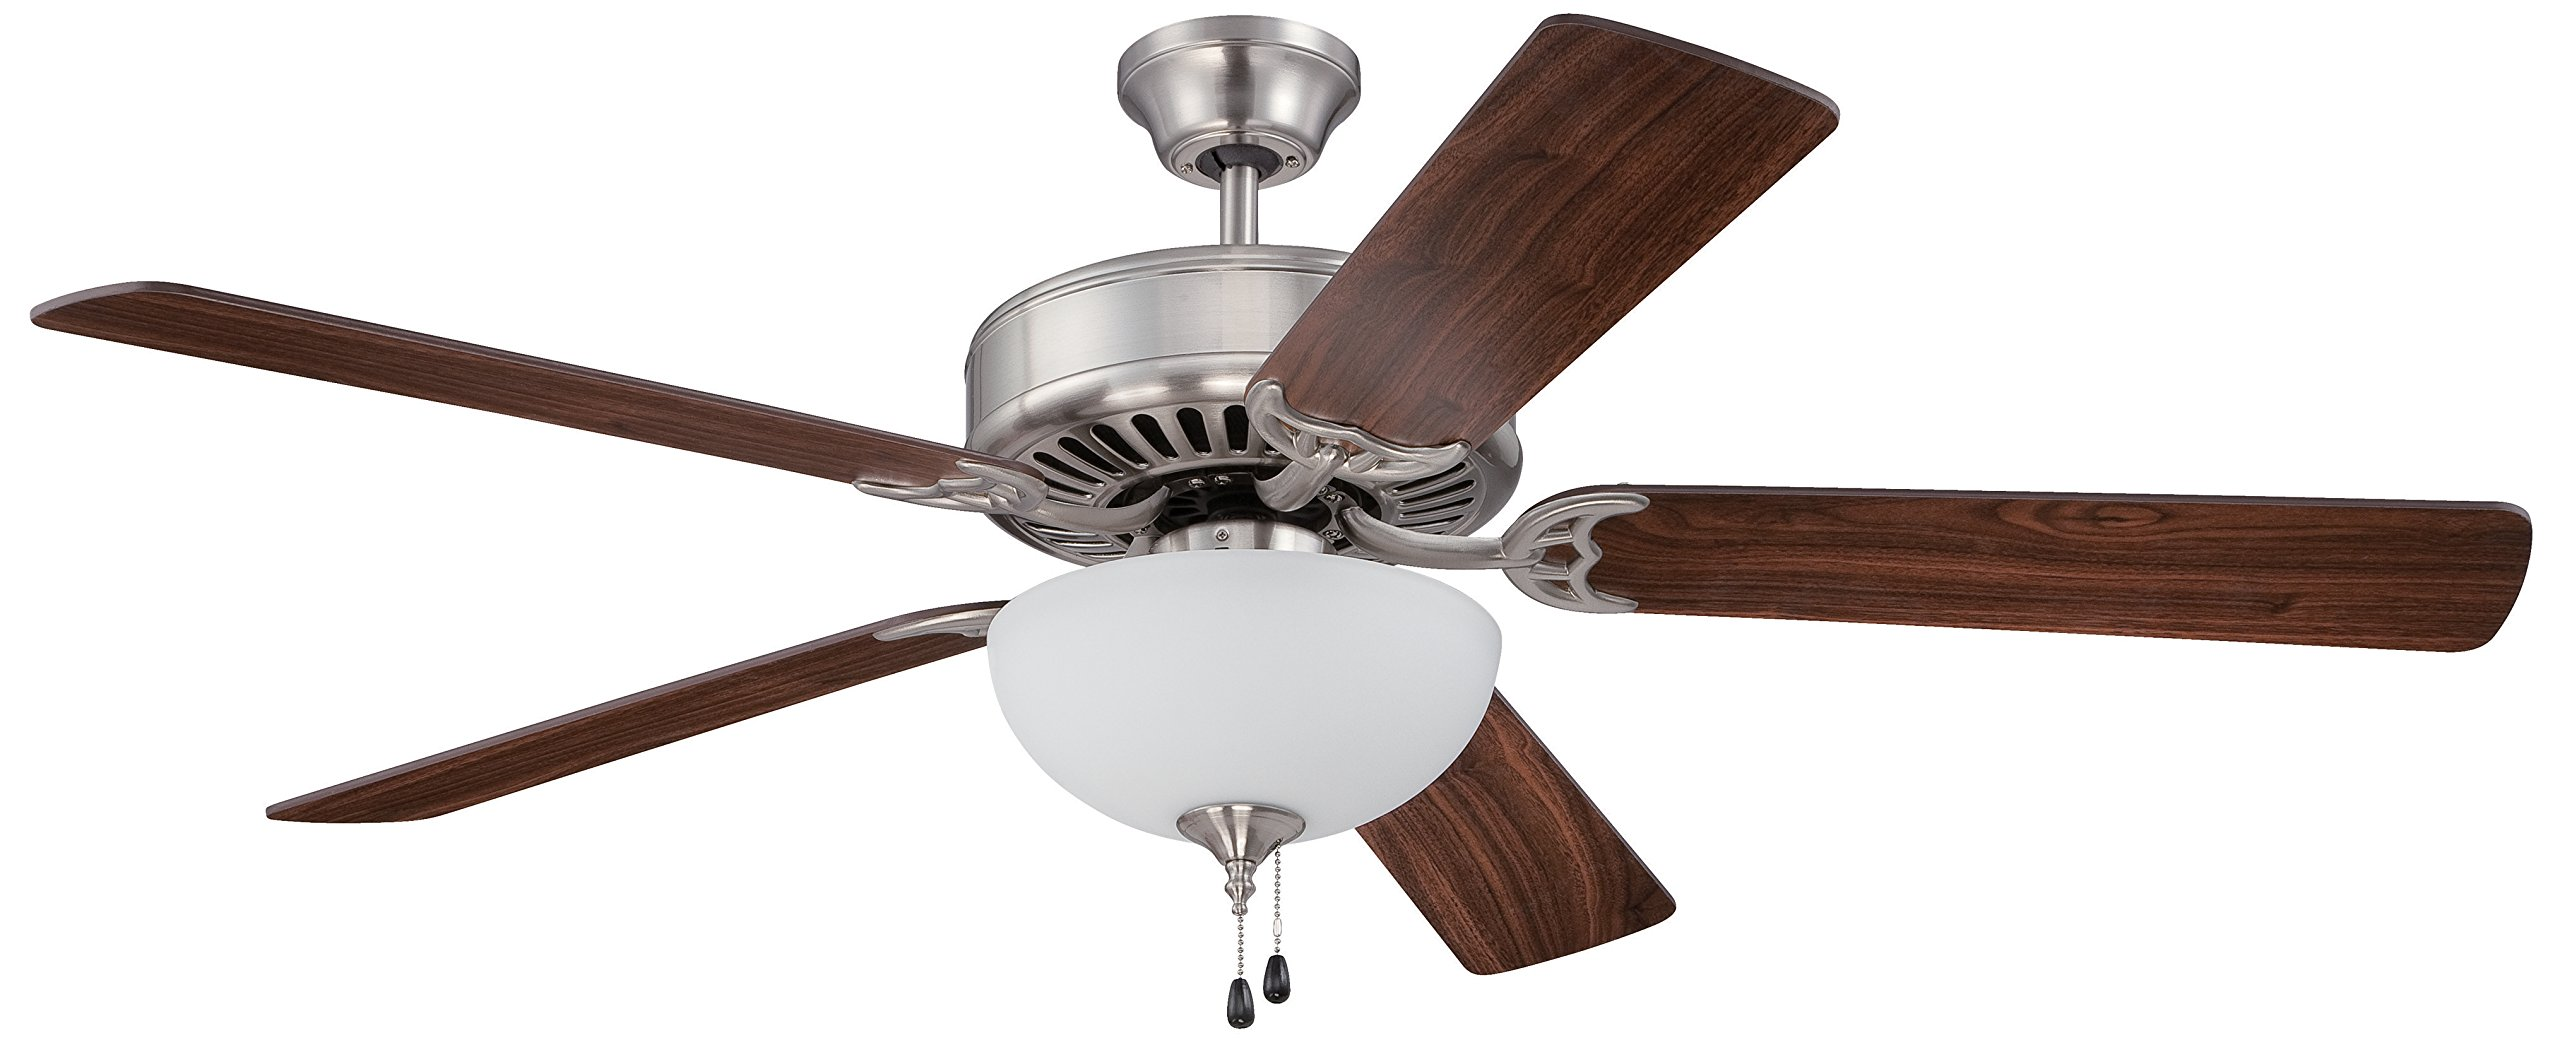 Craftmade C201BNK Ceiling Fan with Blades Sold Separately, 52''